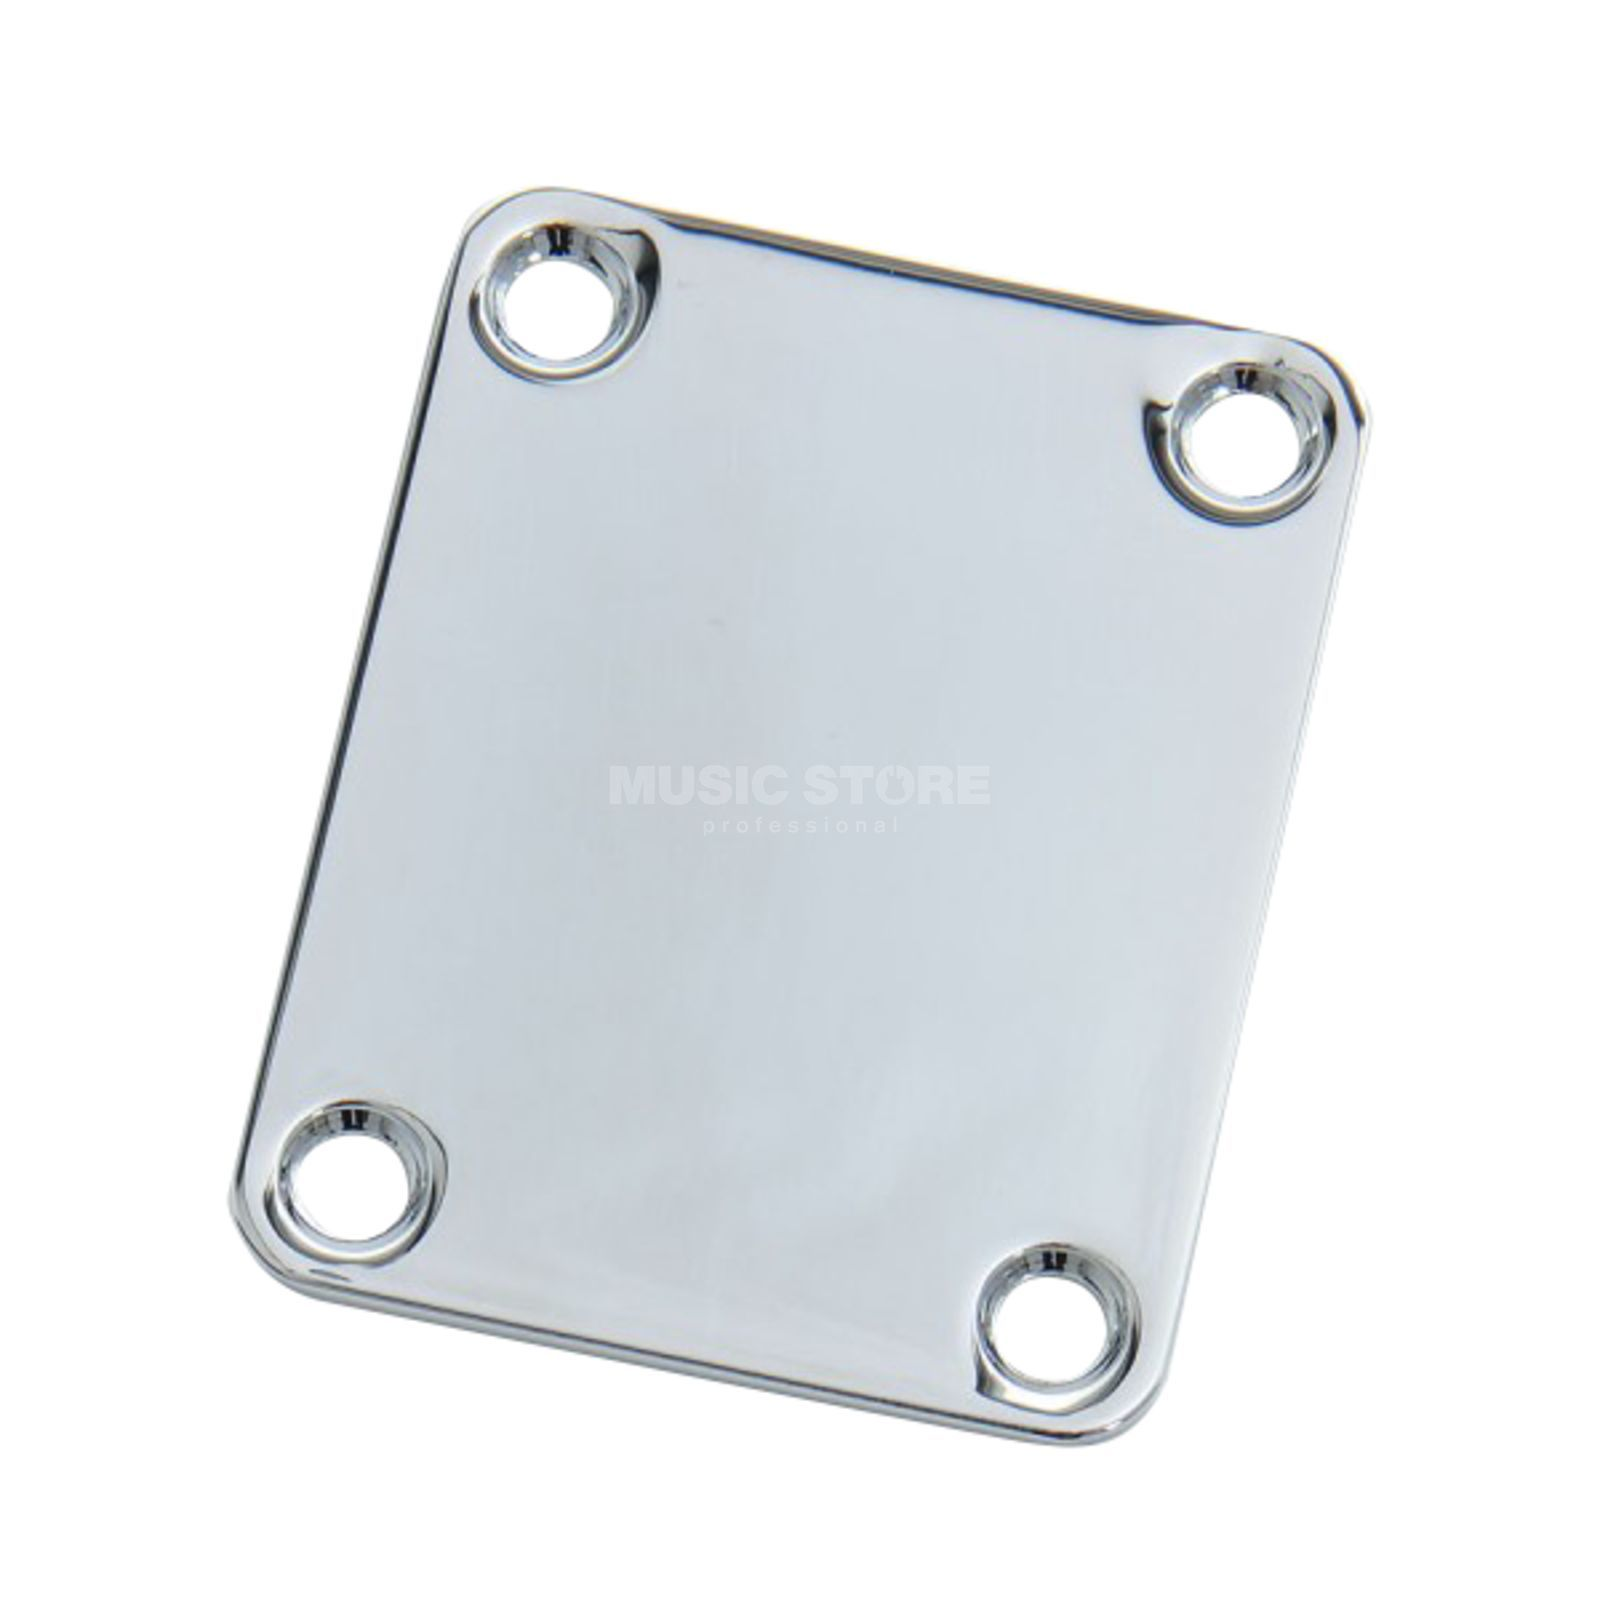 Göldo Neck Plate 4 Hole Chrome Изображение товара